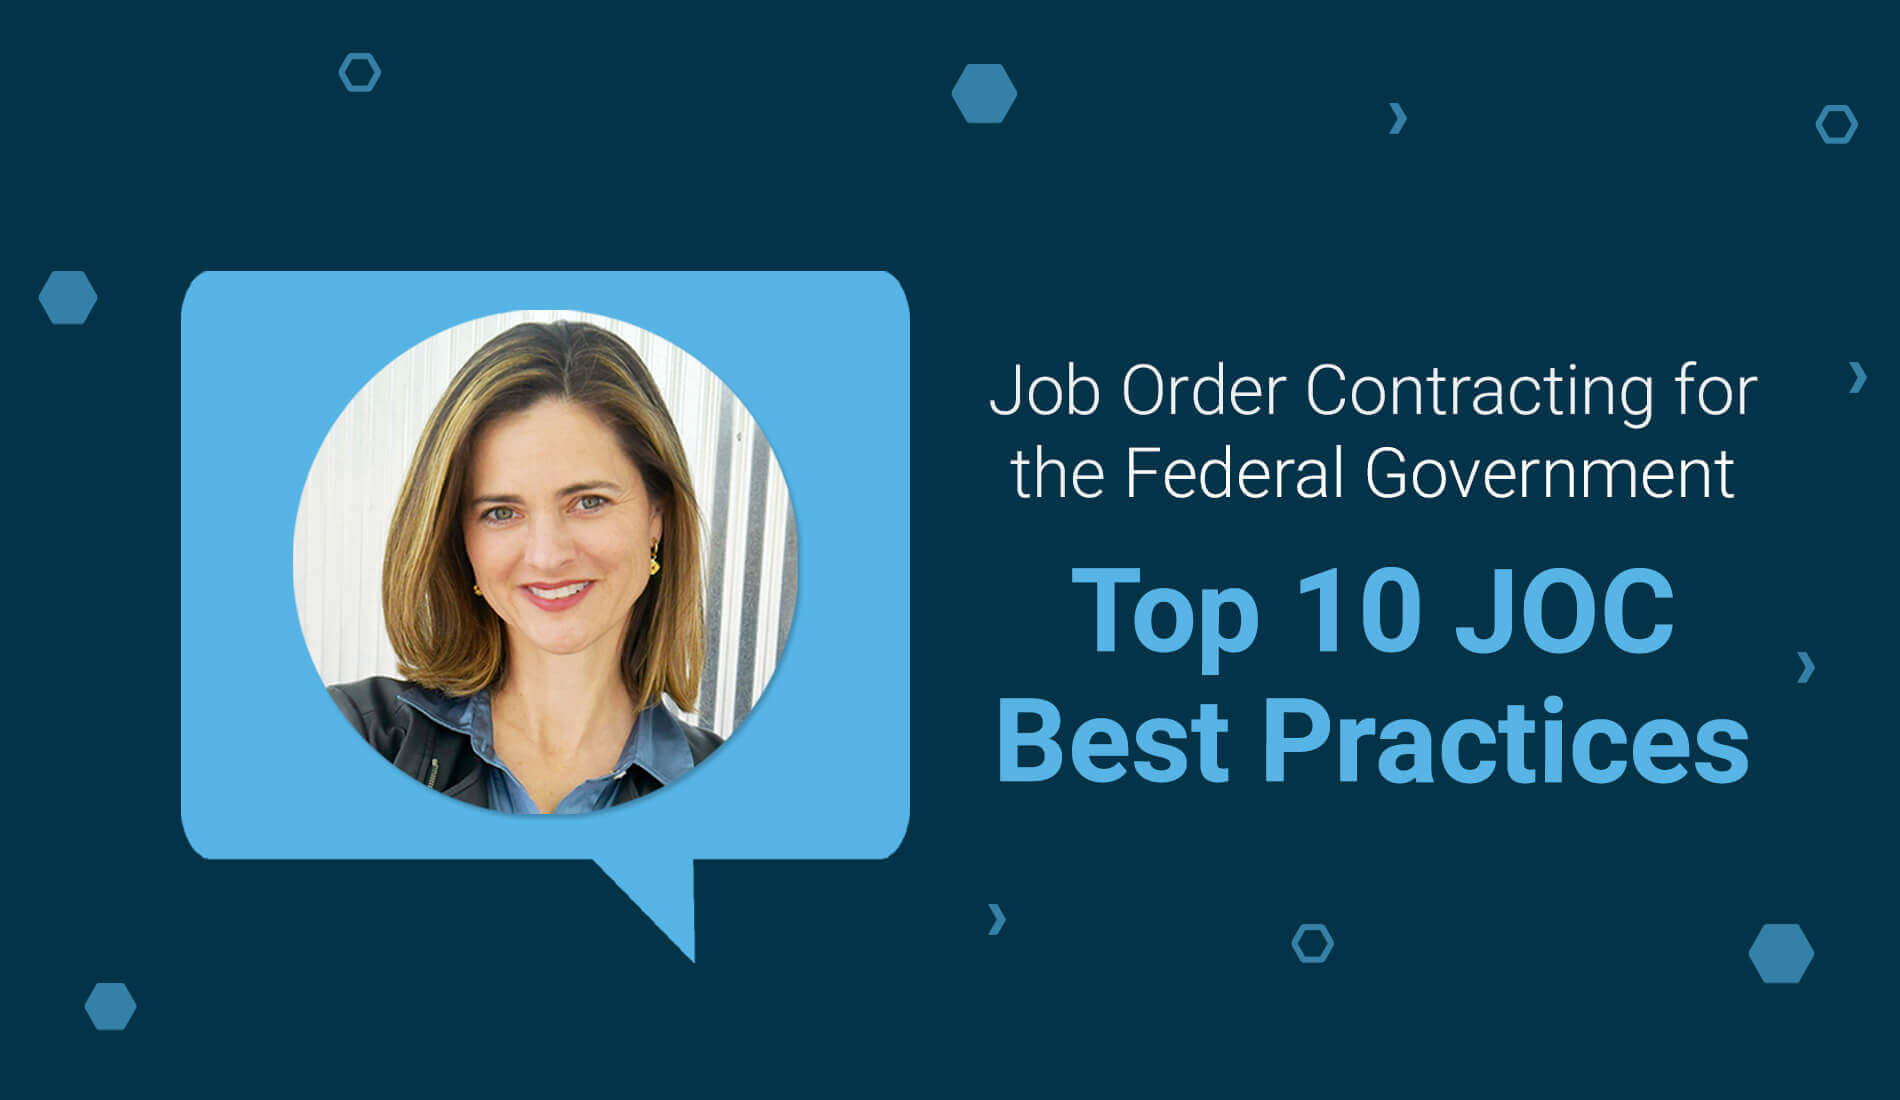 Top 10 JOC Best Practices for the Federal Space 4